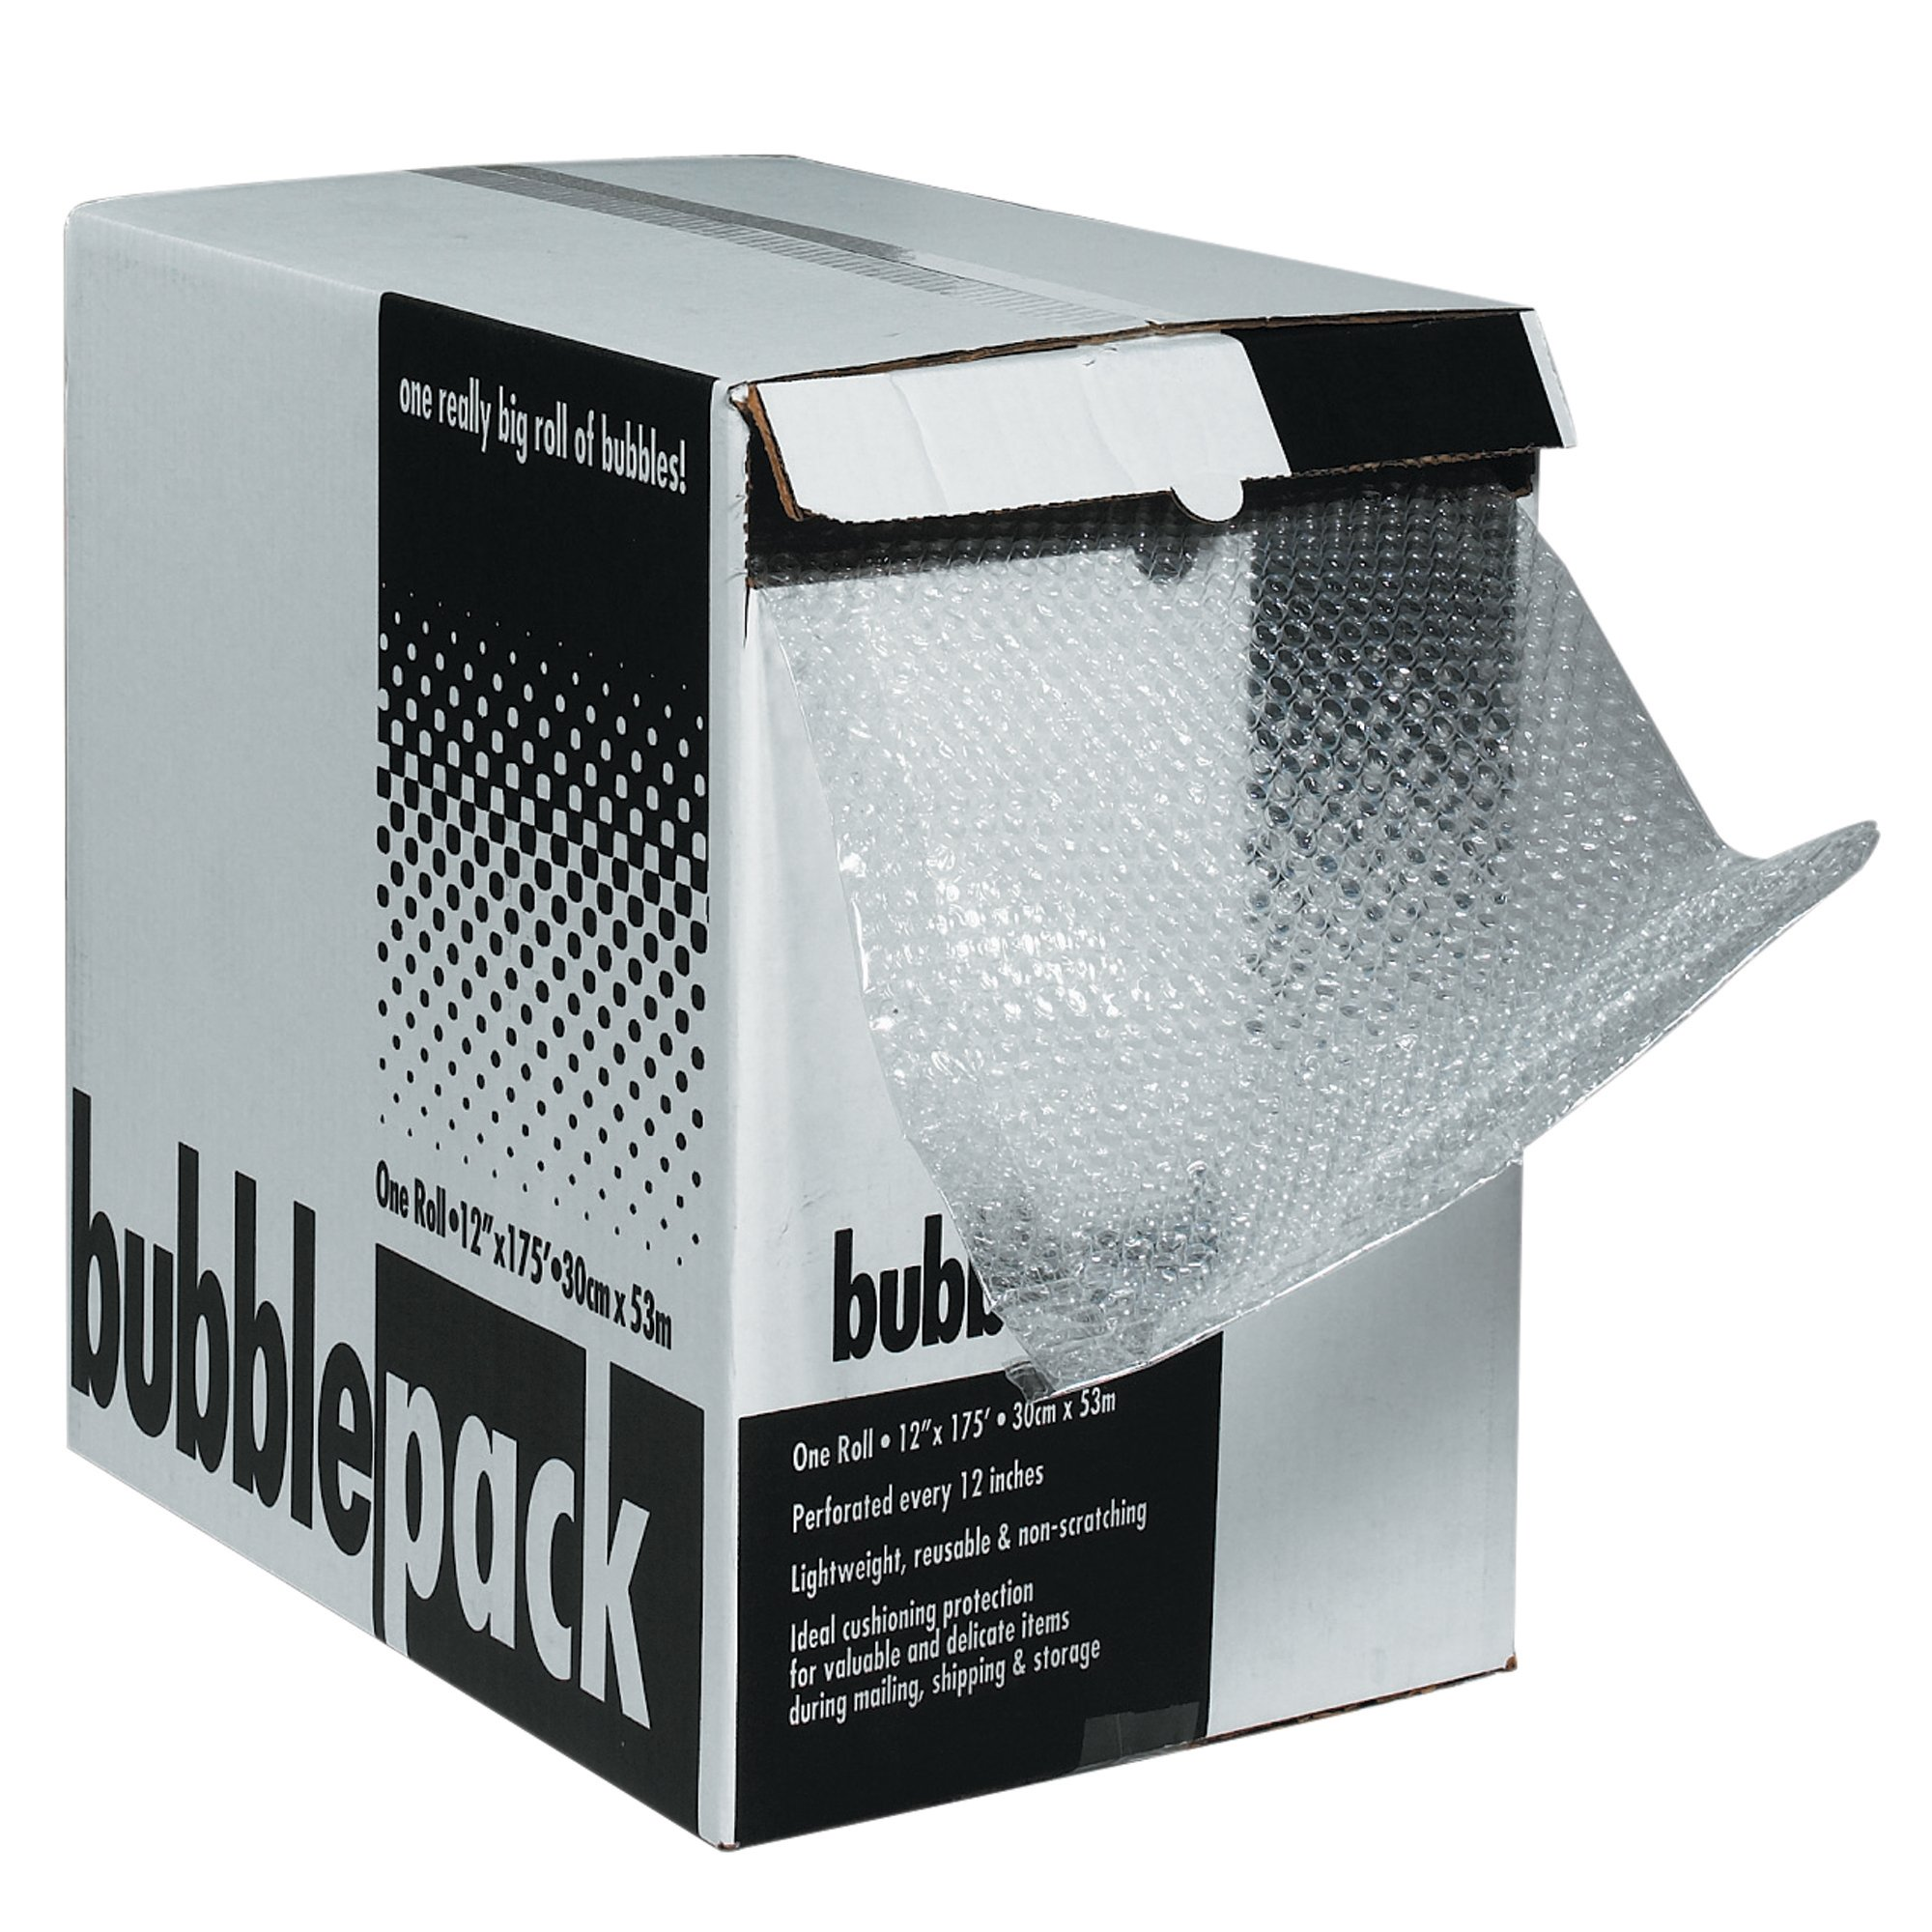 Boxes Fast BFBD51624 Bubble Dispenser Pack, 5/16'' x 24'' x 100', Clear (Pack of 1)